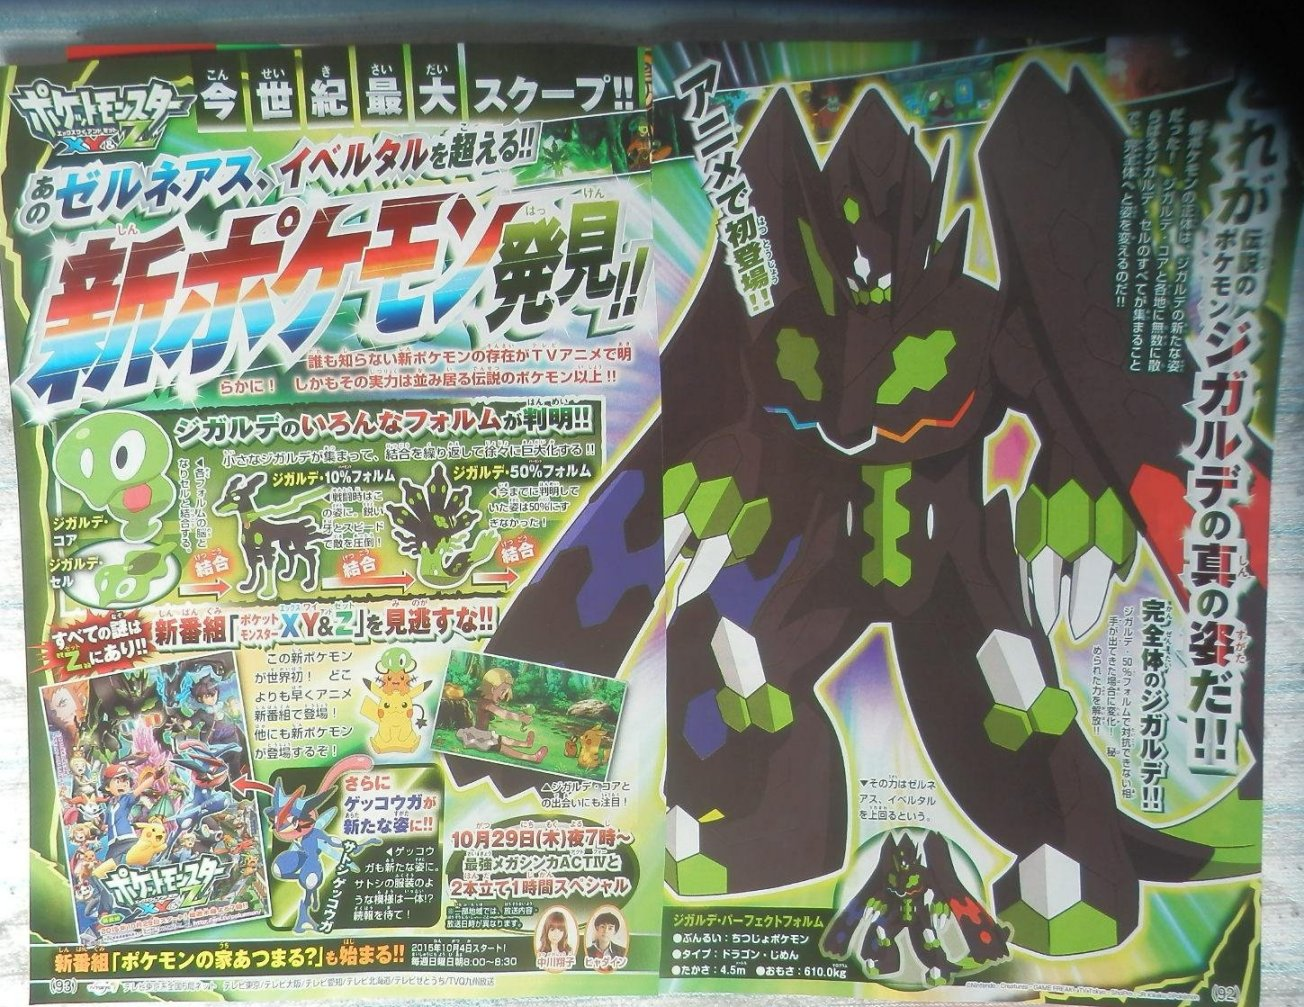 https://i2.wp.com/www.serebii.net/corocoro10151.jpg